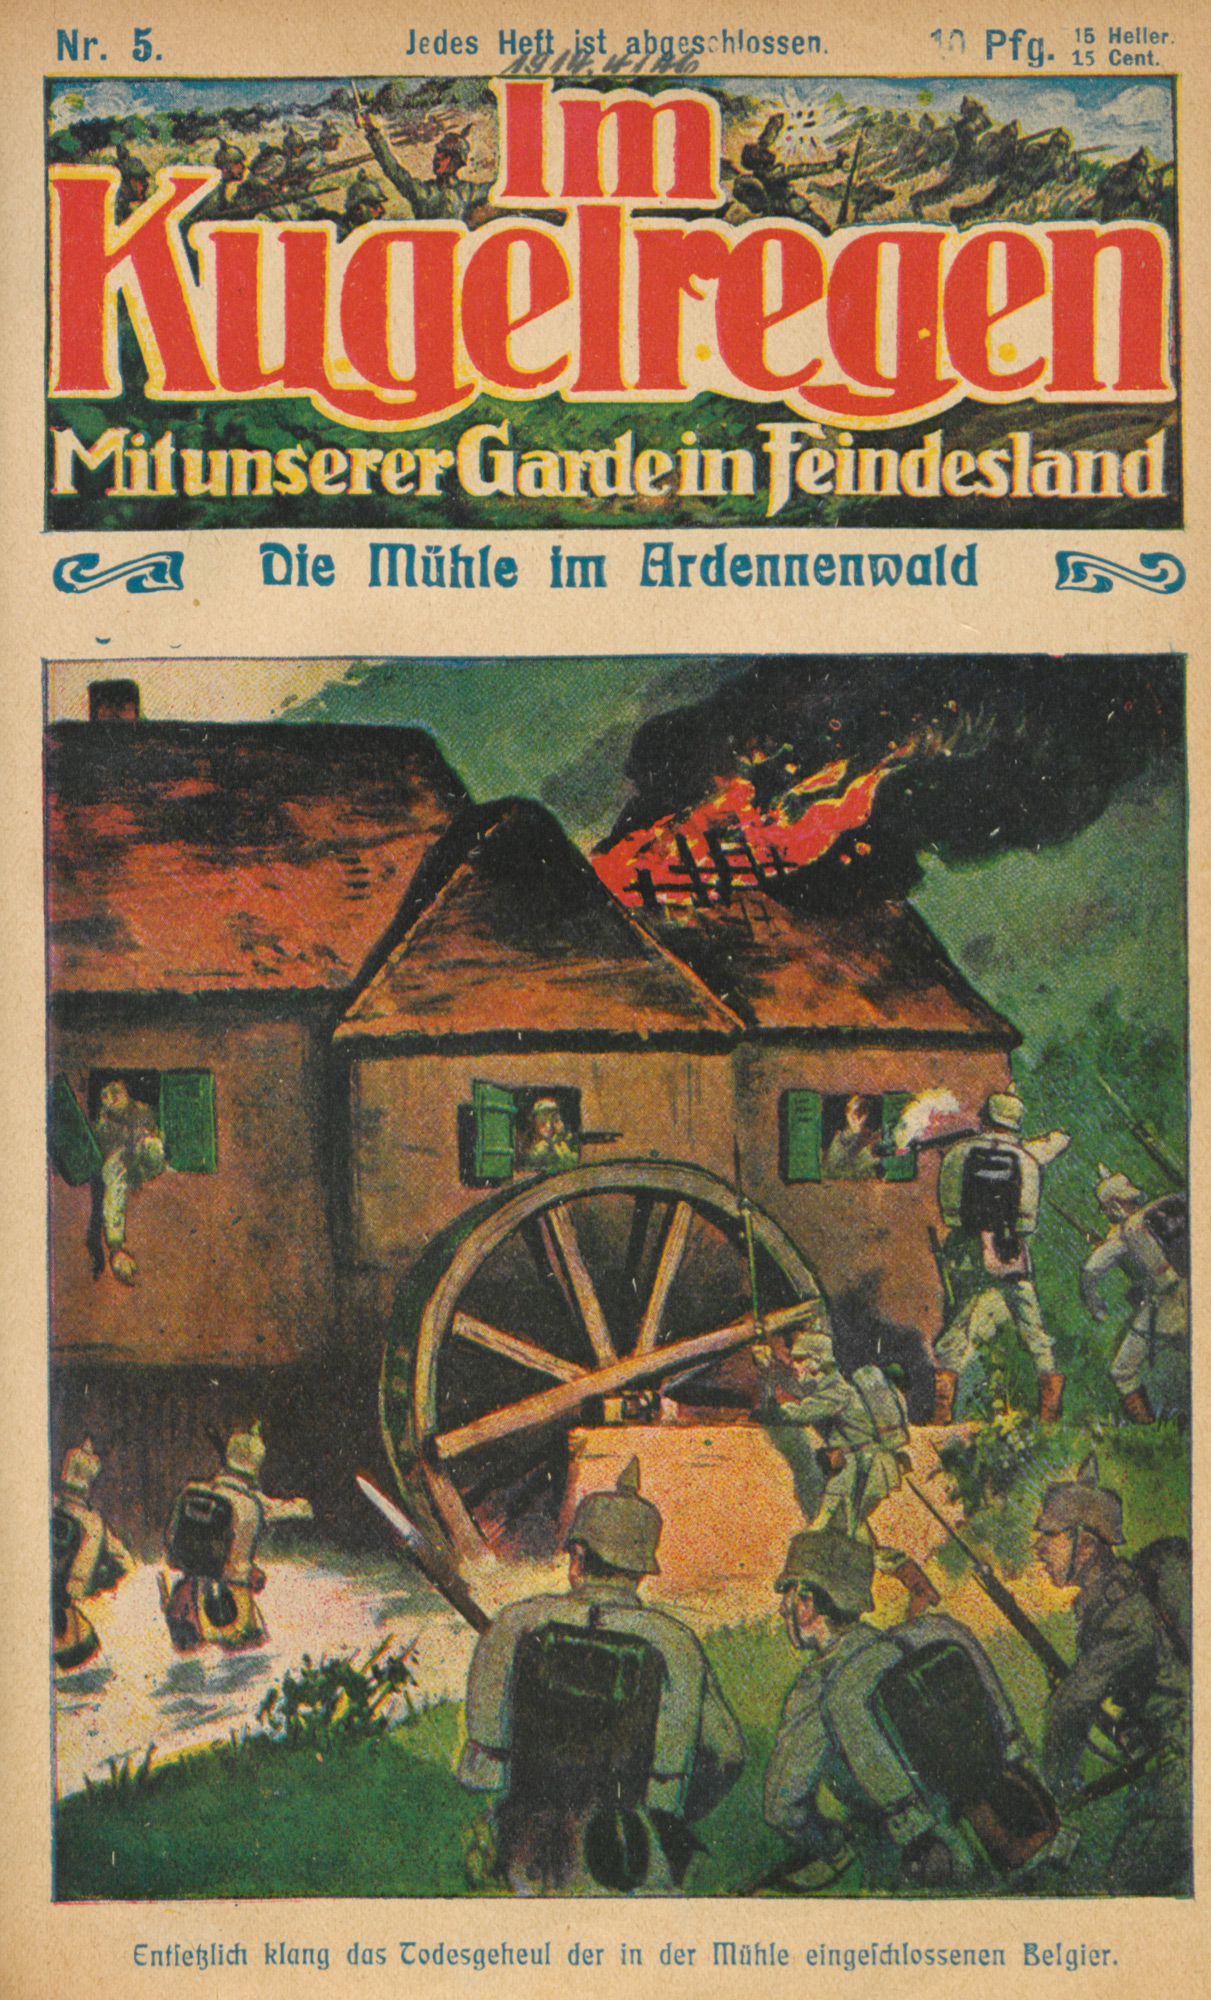 'The Mill in the Ardennes' taken from a series of German penny magazines. The story portrays German soldiers fighting in Belgium as good-natured - only using violence in emergencies.